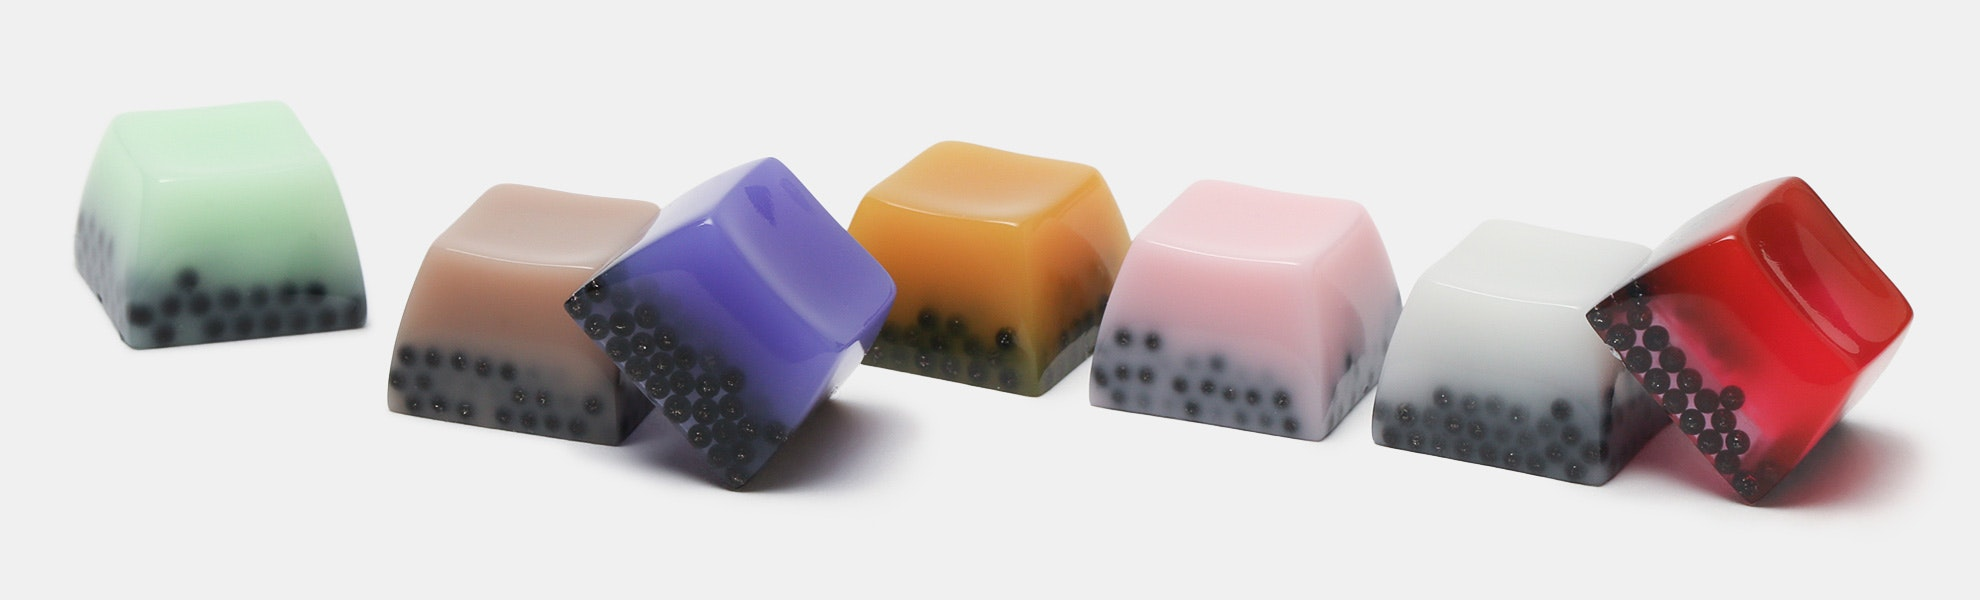 Idea23 Bubble Tea Artisan Keycap